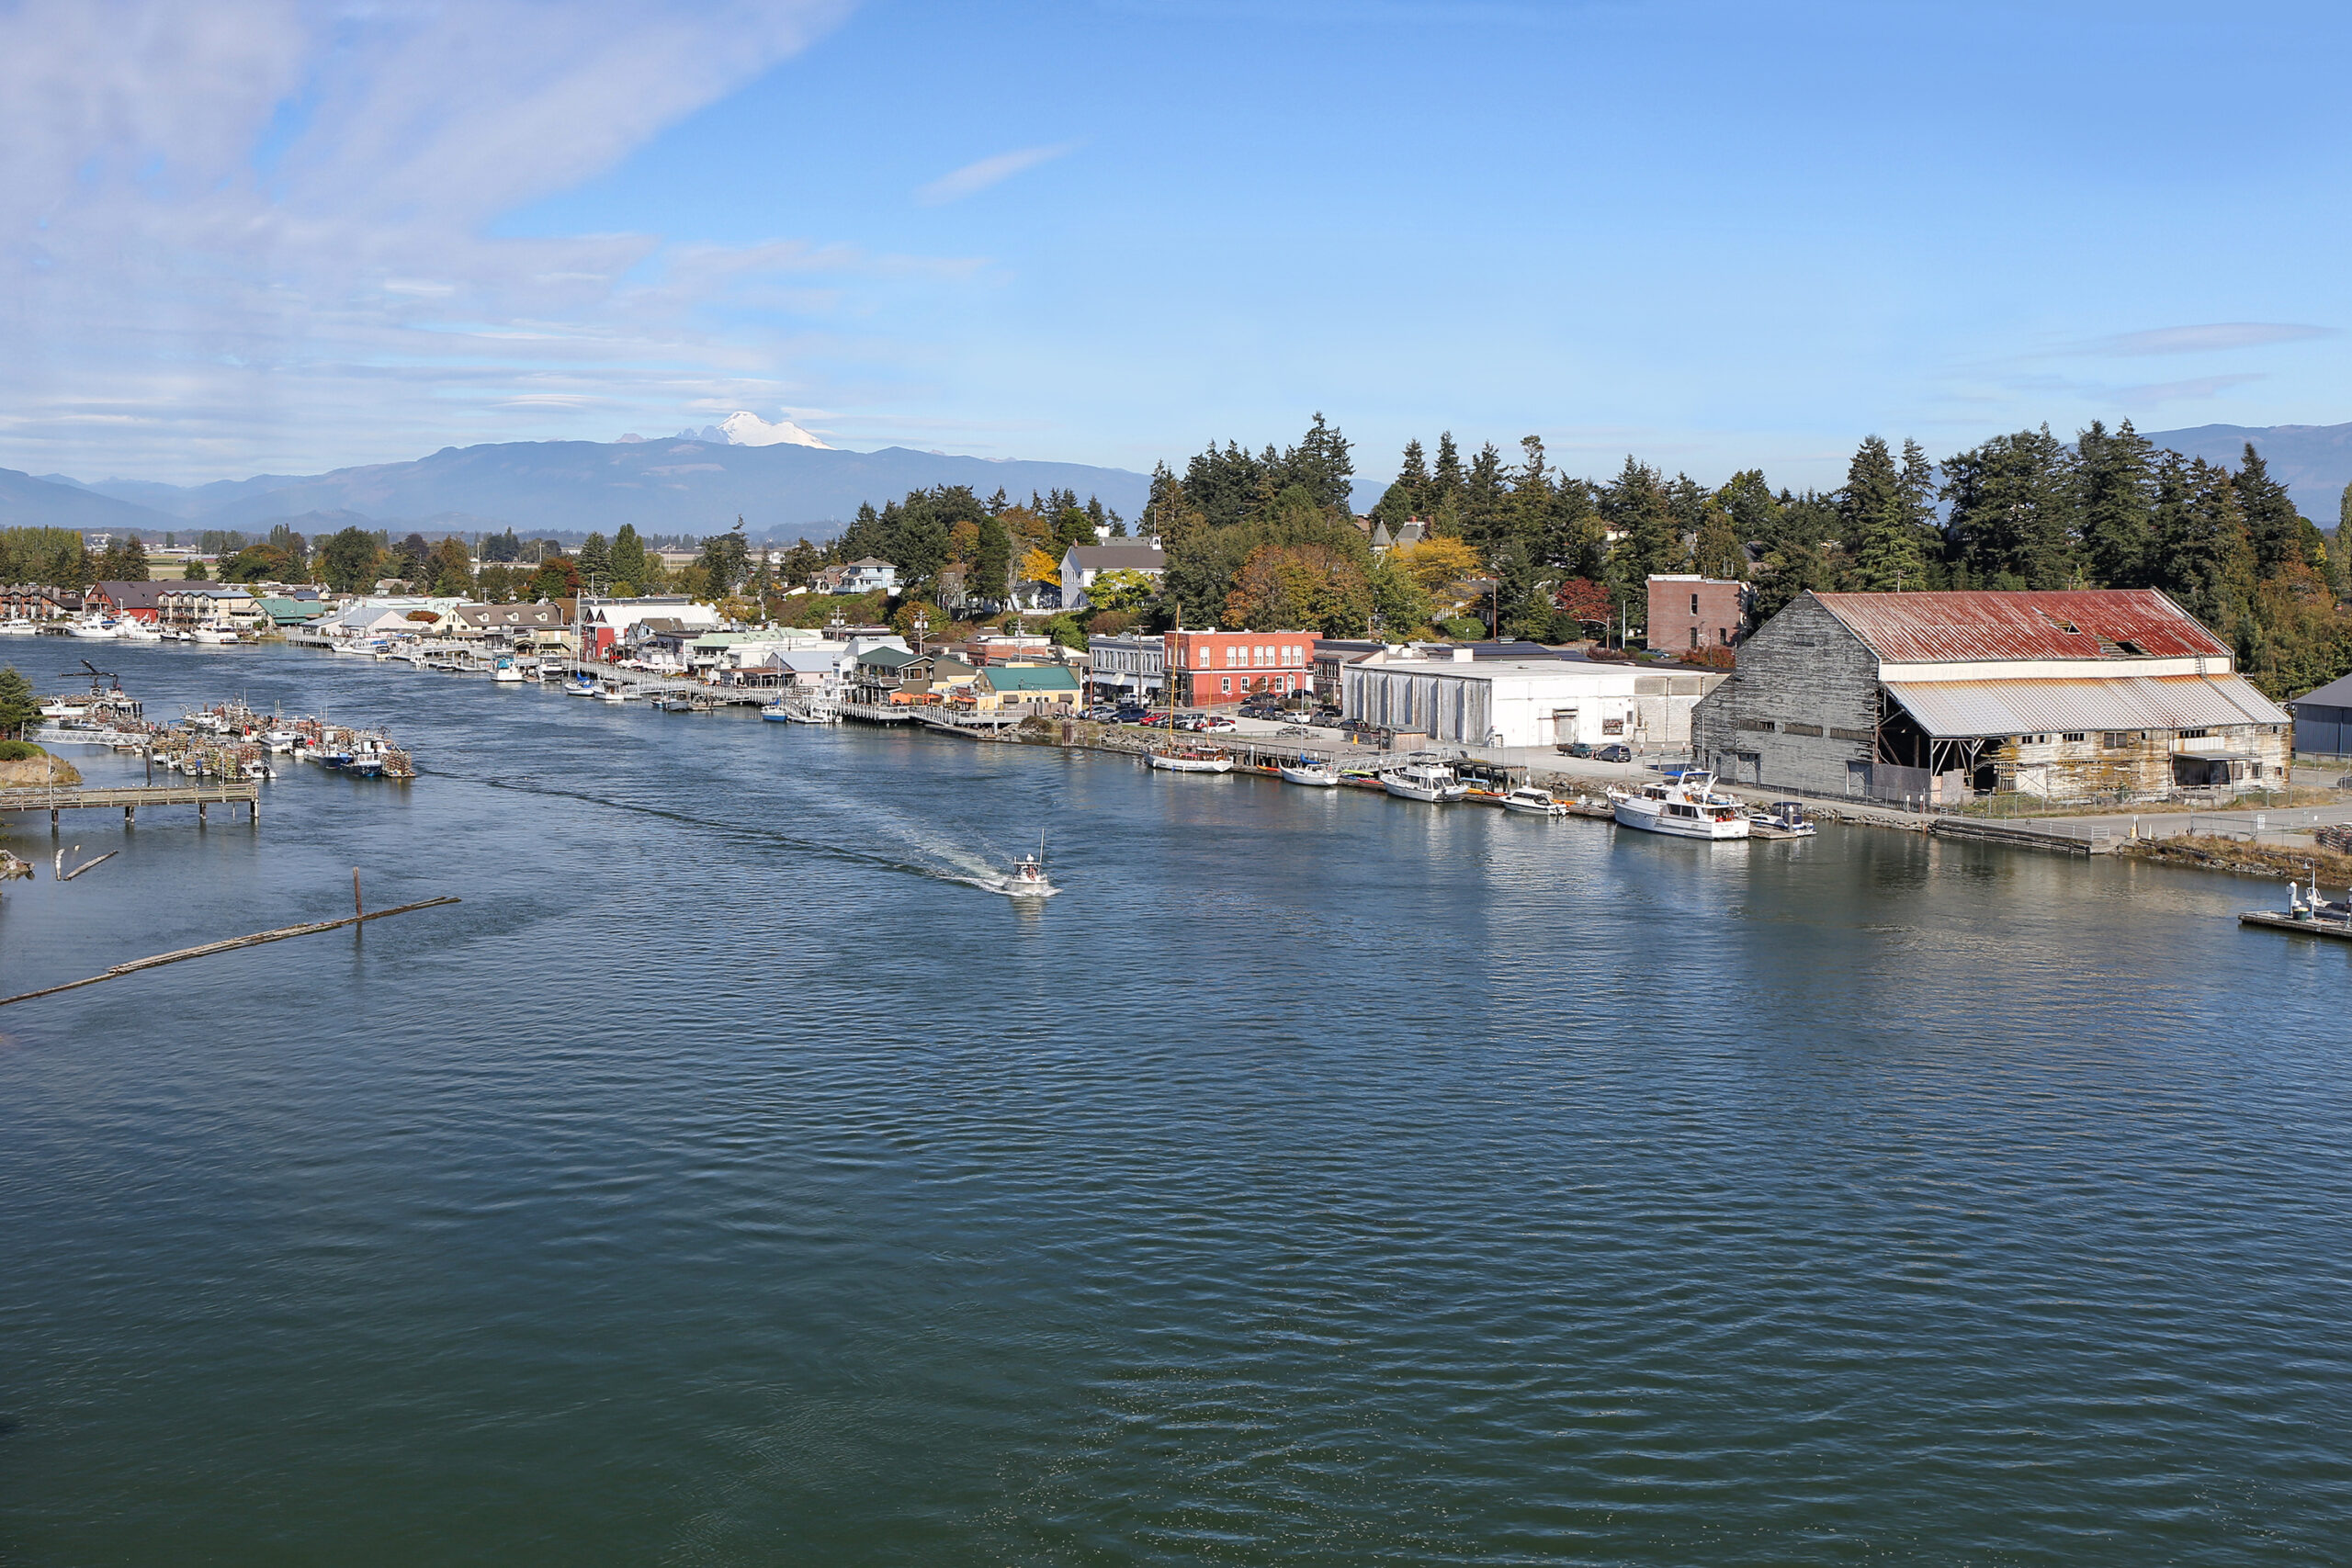 view of la conner washington from across the water, one of the best small towns in washington state